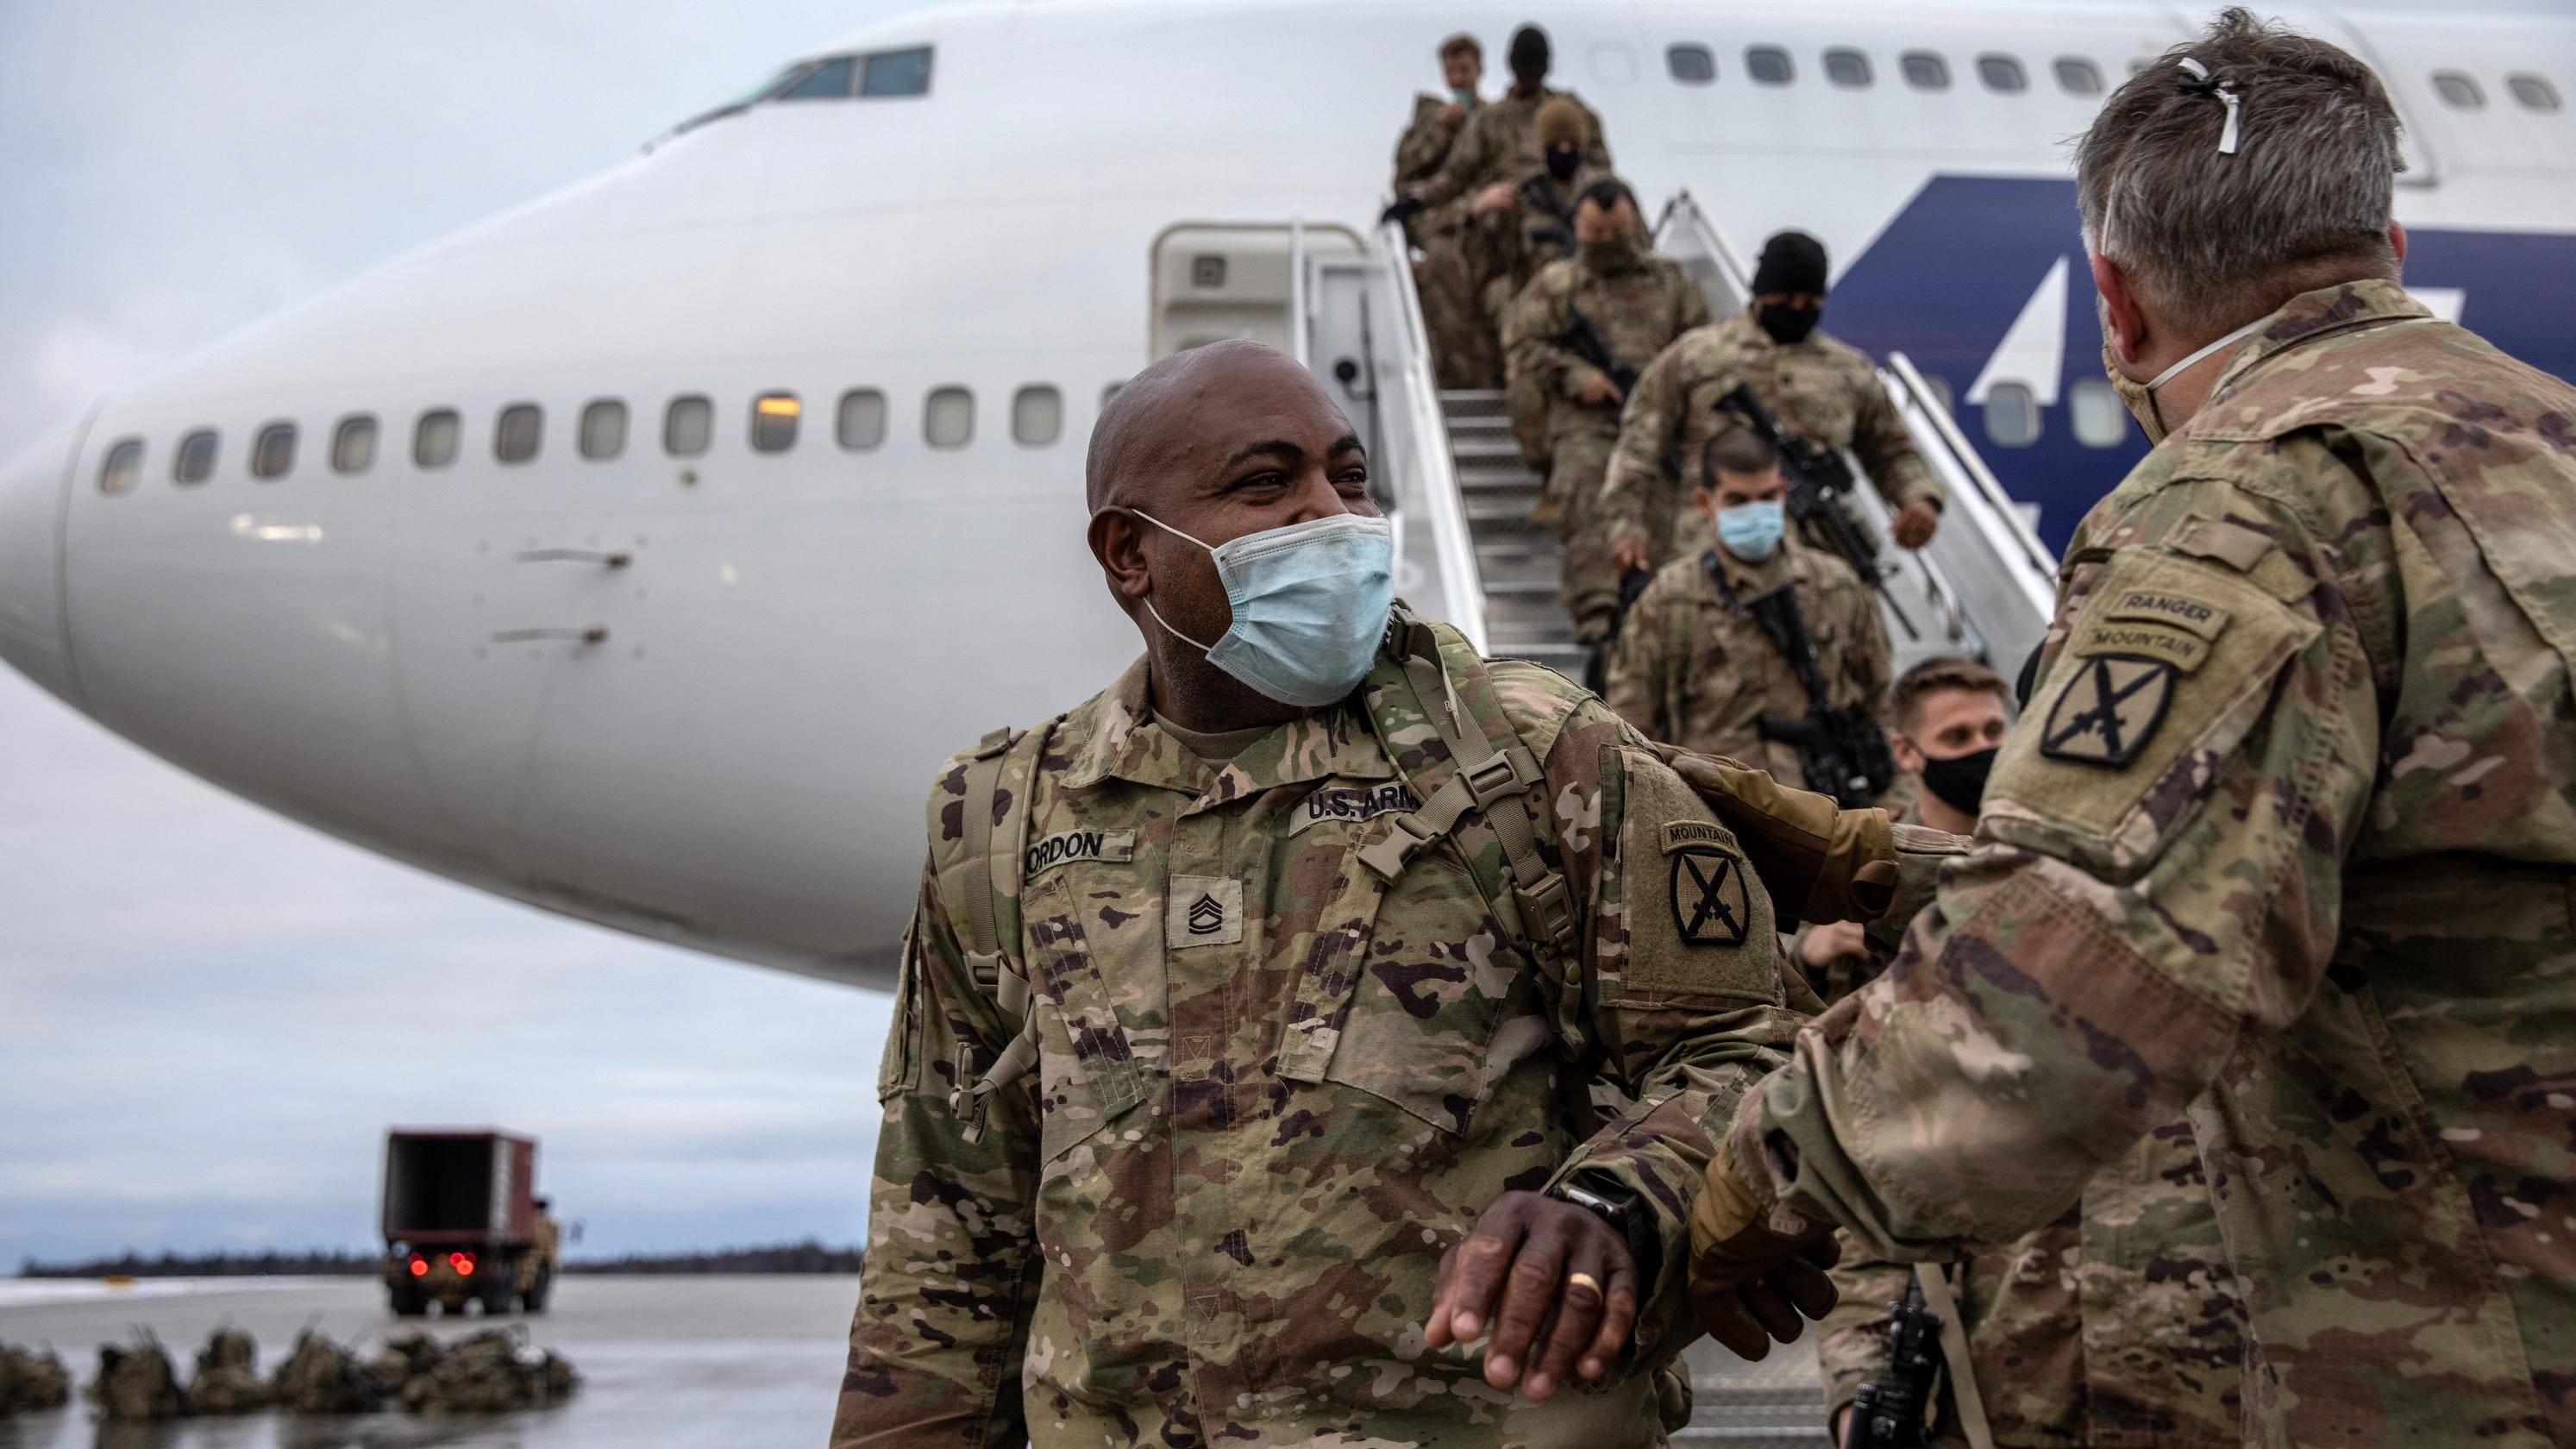 Withdrawing troops from Afghanistan: Biden's unforced error puts America at risk